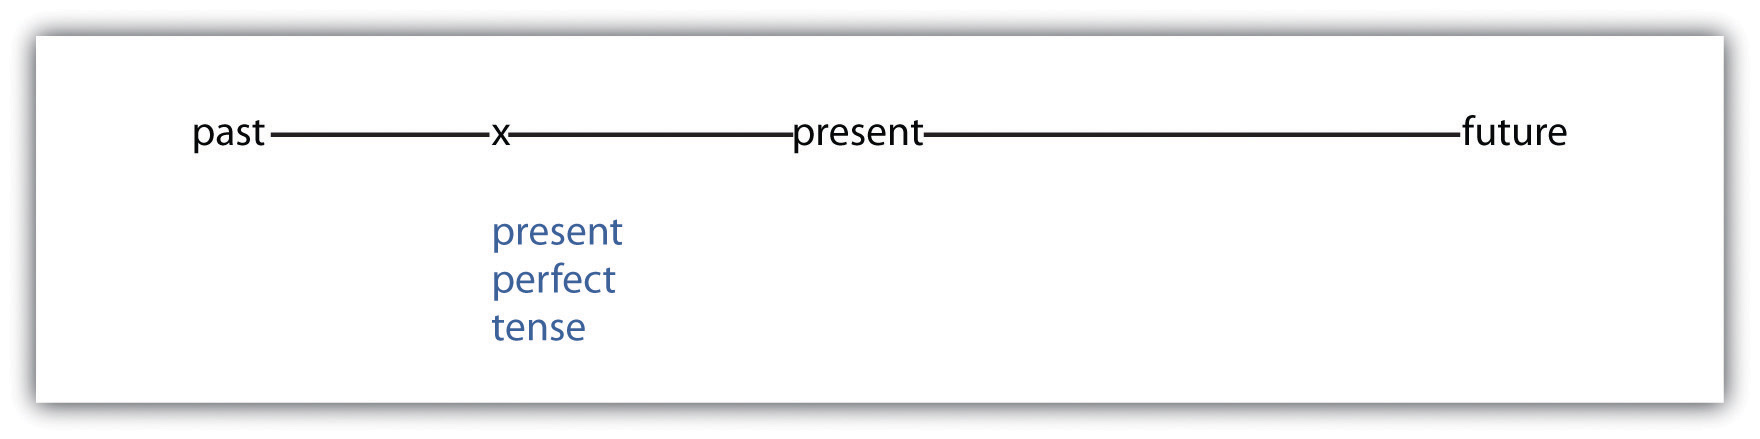 Present Perfect Continuous Tense Formula The Present Perfect Tense Has